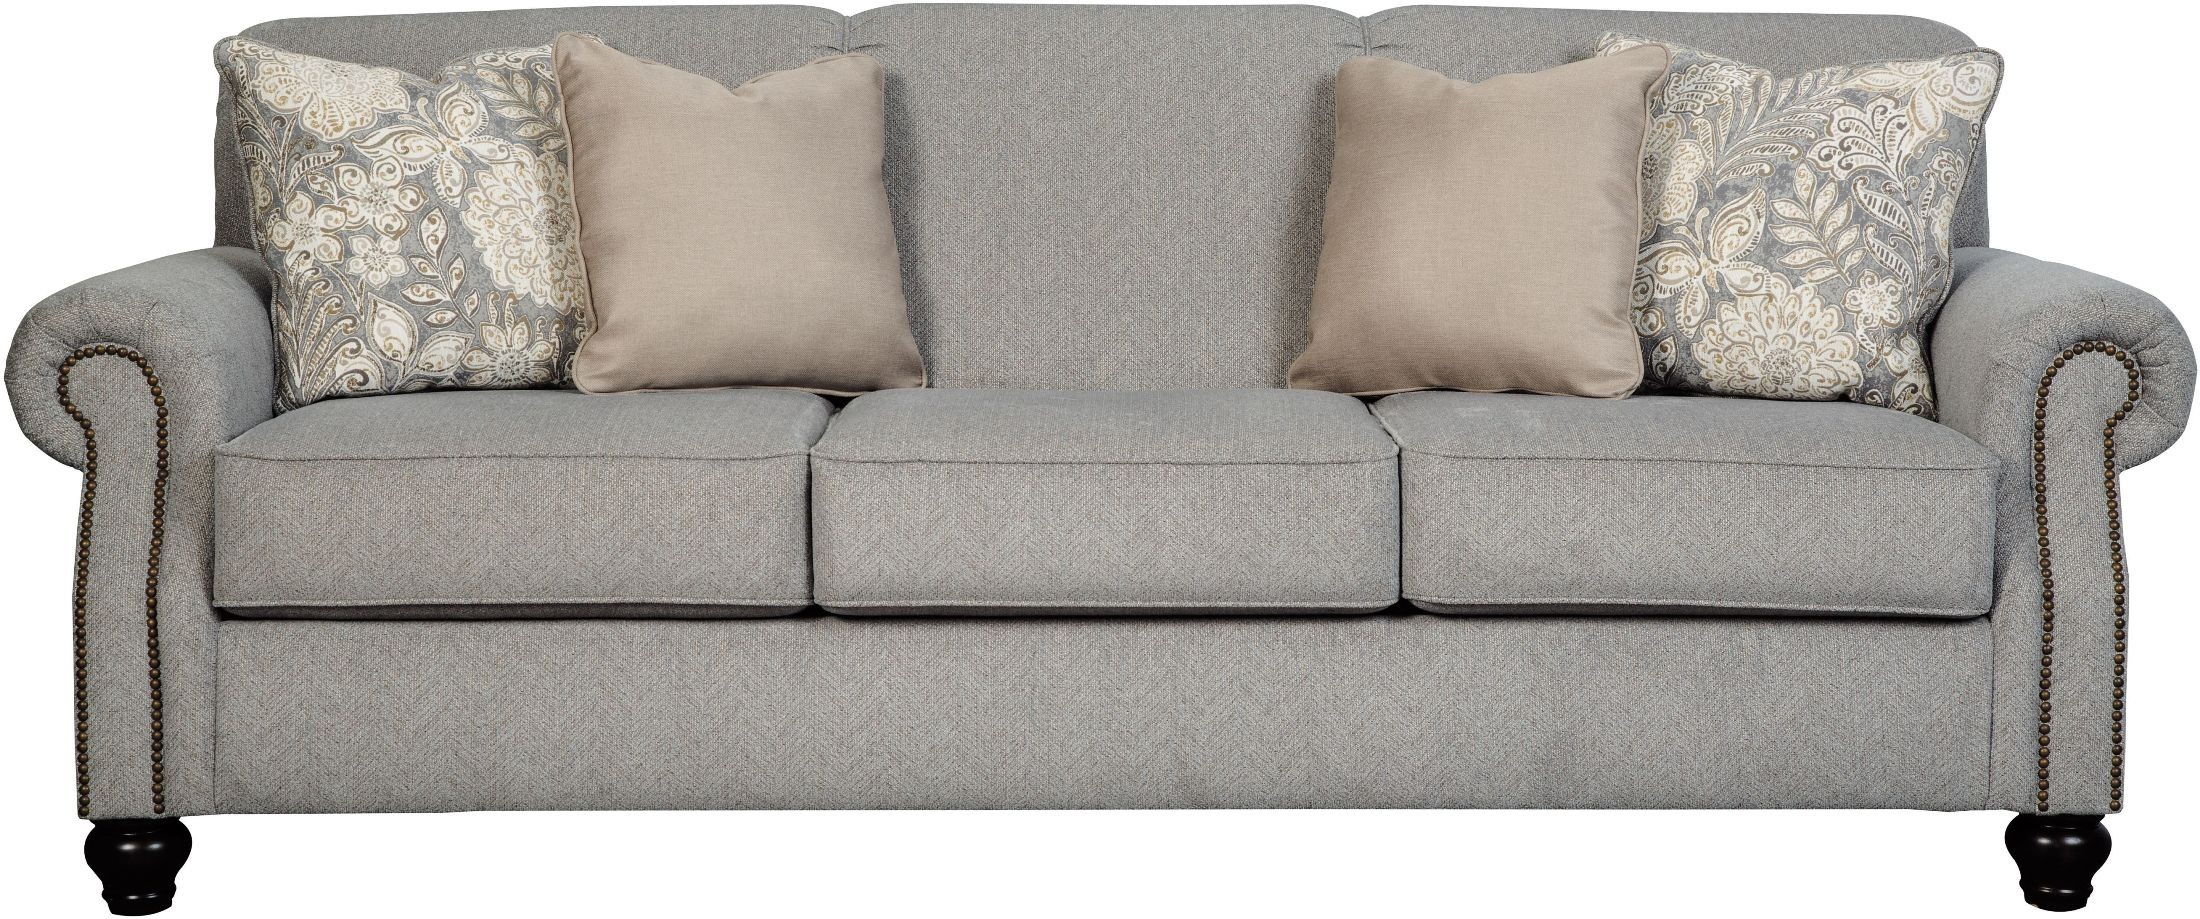 Avelynne Ocean Sofa From Ashley Coleman Furniture